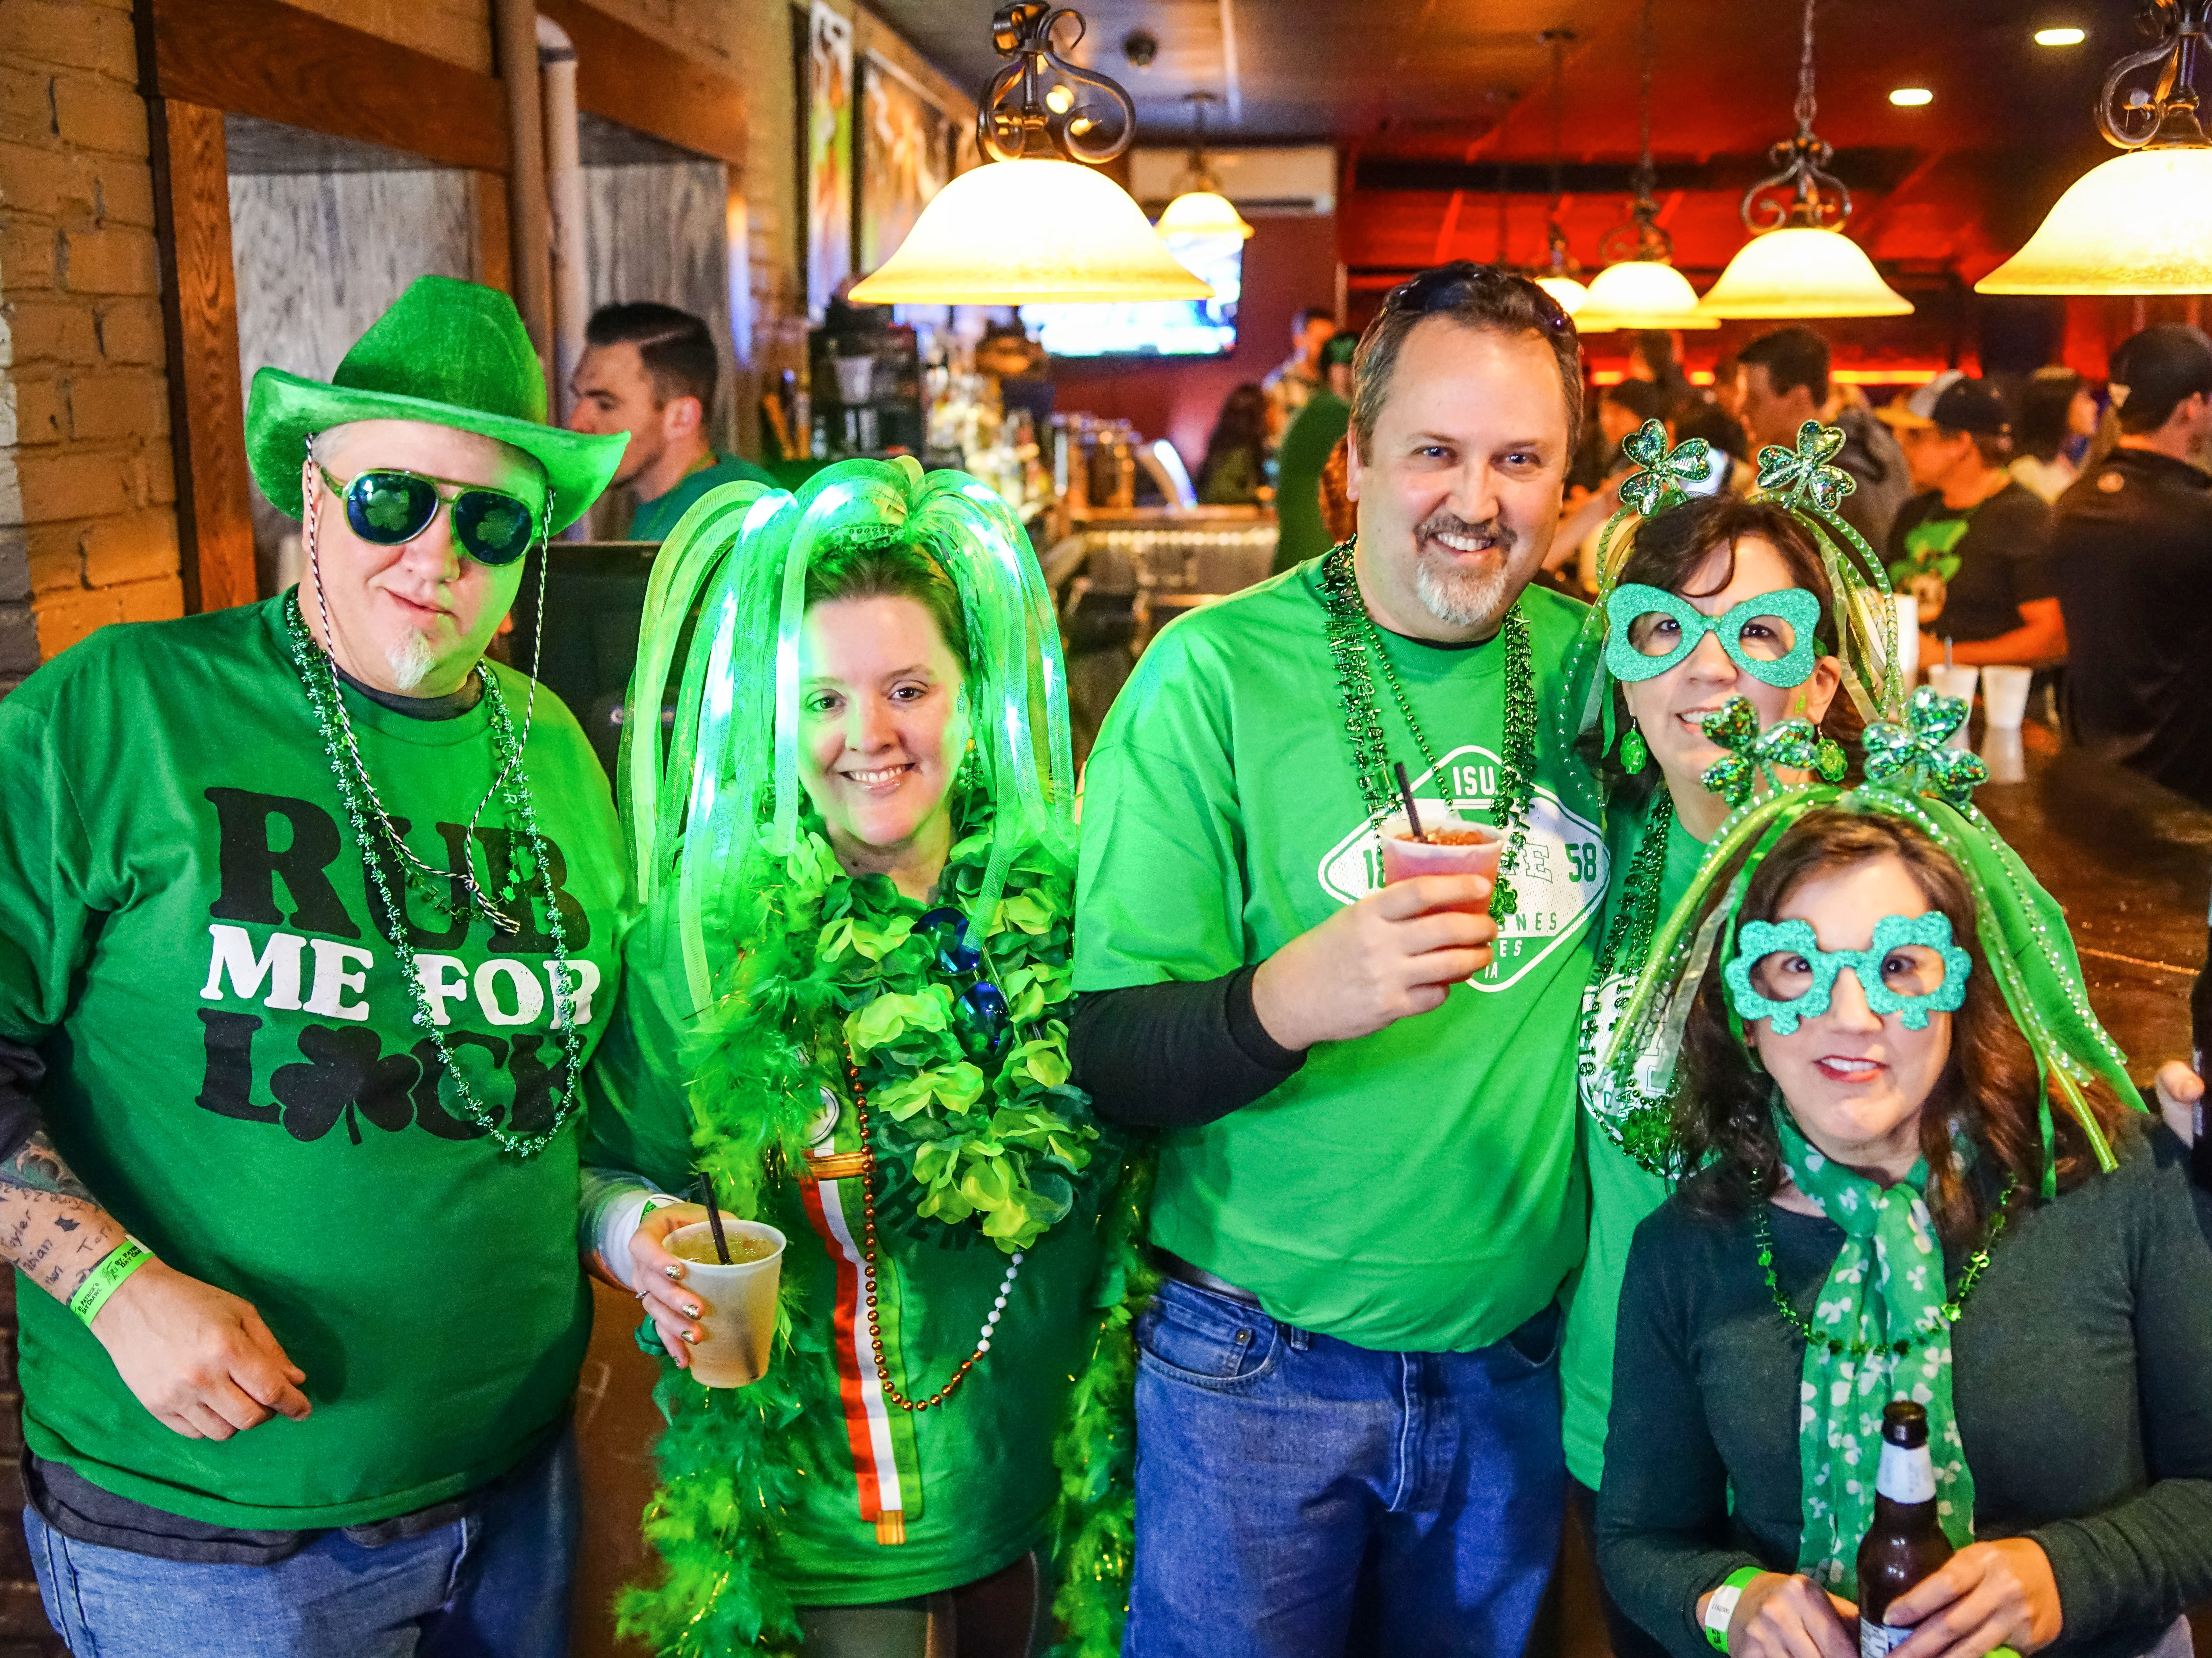 Sara Mertens, 42, Tyler Waddle, 38, Todd Waddle, 52, Kelly Waddle, 46, and Tonia Alexander, 42, all of Des Moines, having a fun time, Saturday, March 16, 2019, at Voodoo Lounge.